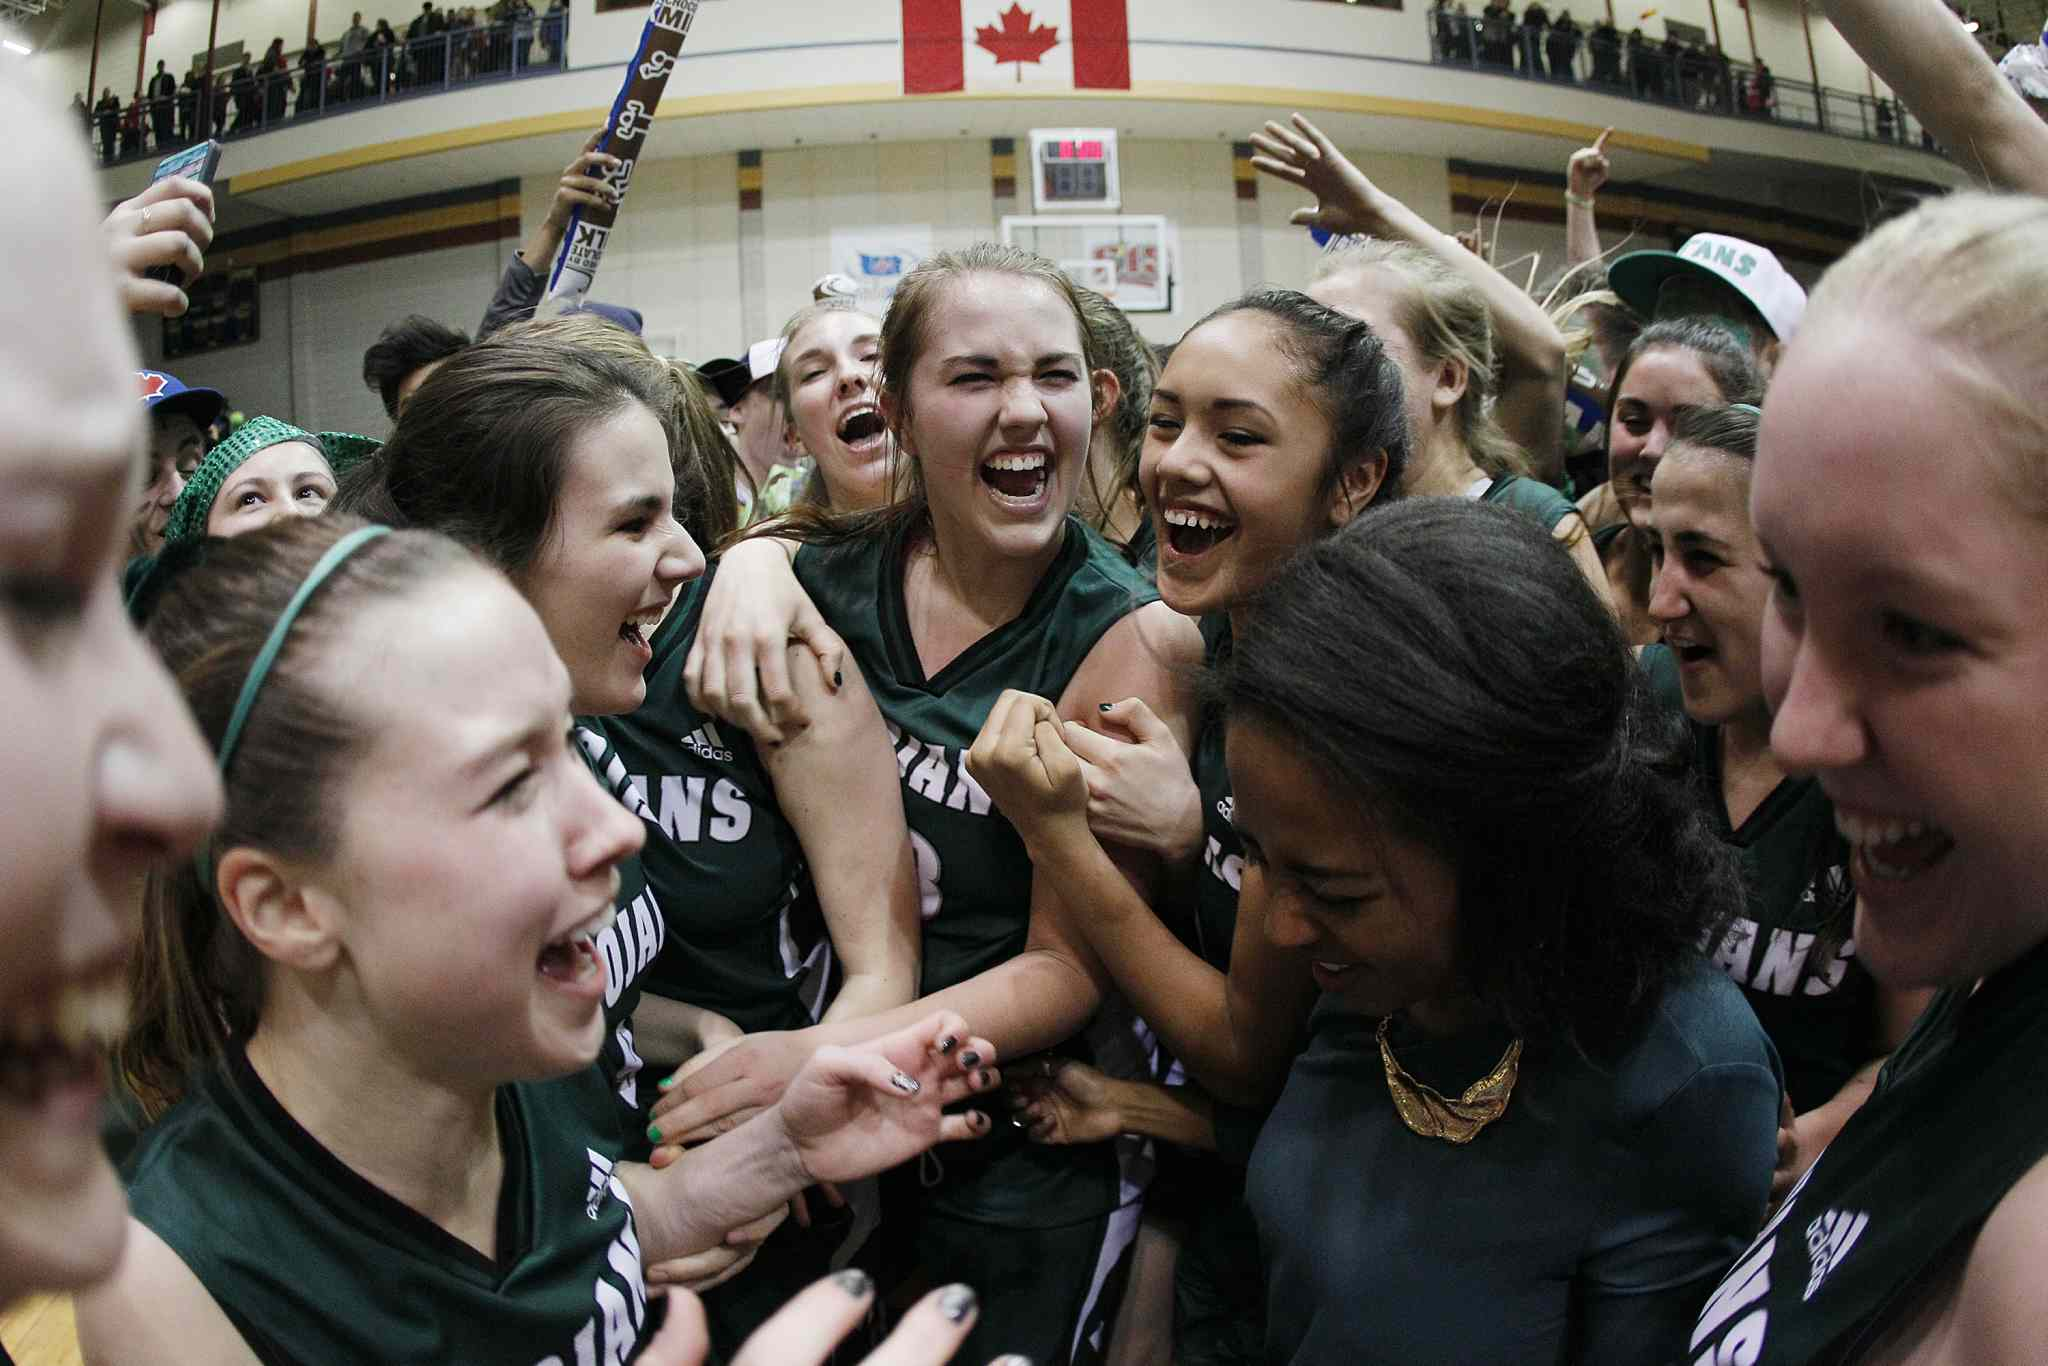 Members of the Vincent Massey Trojans celebrate a 70-53 win over the Sisler Spartans in the high school AAAA provincial basketball championship game at the University of Manitoba's Investors Group Athletic Centre Monday, March 24, 2014.